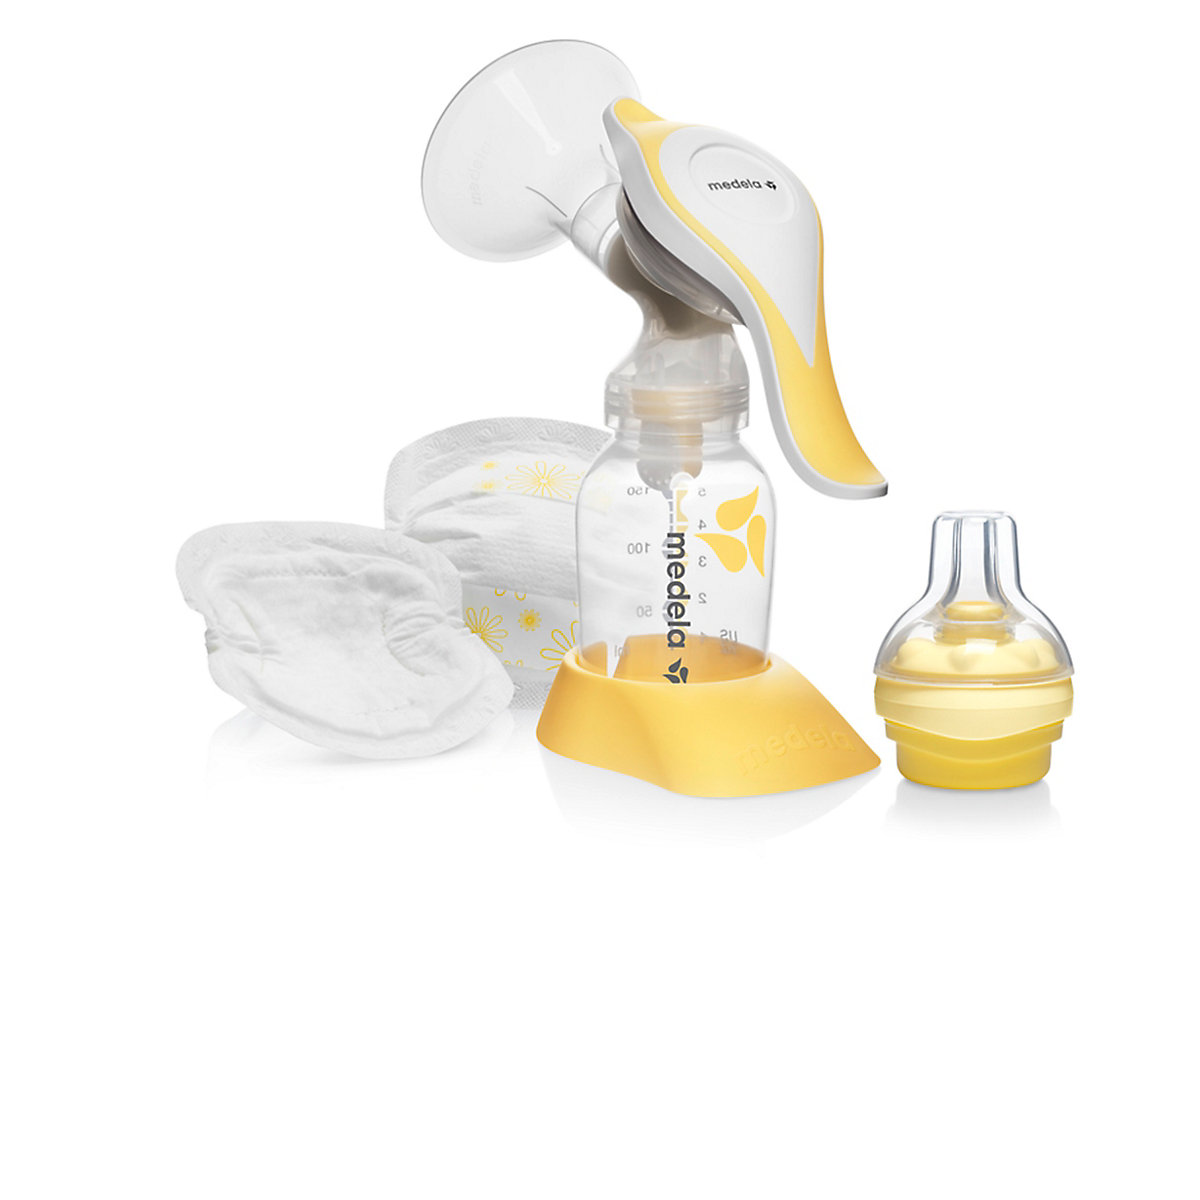 Medela harmony pump and feed breast pump